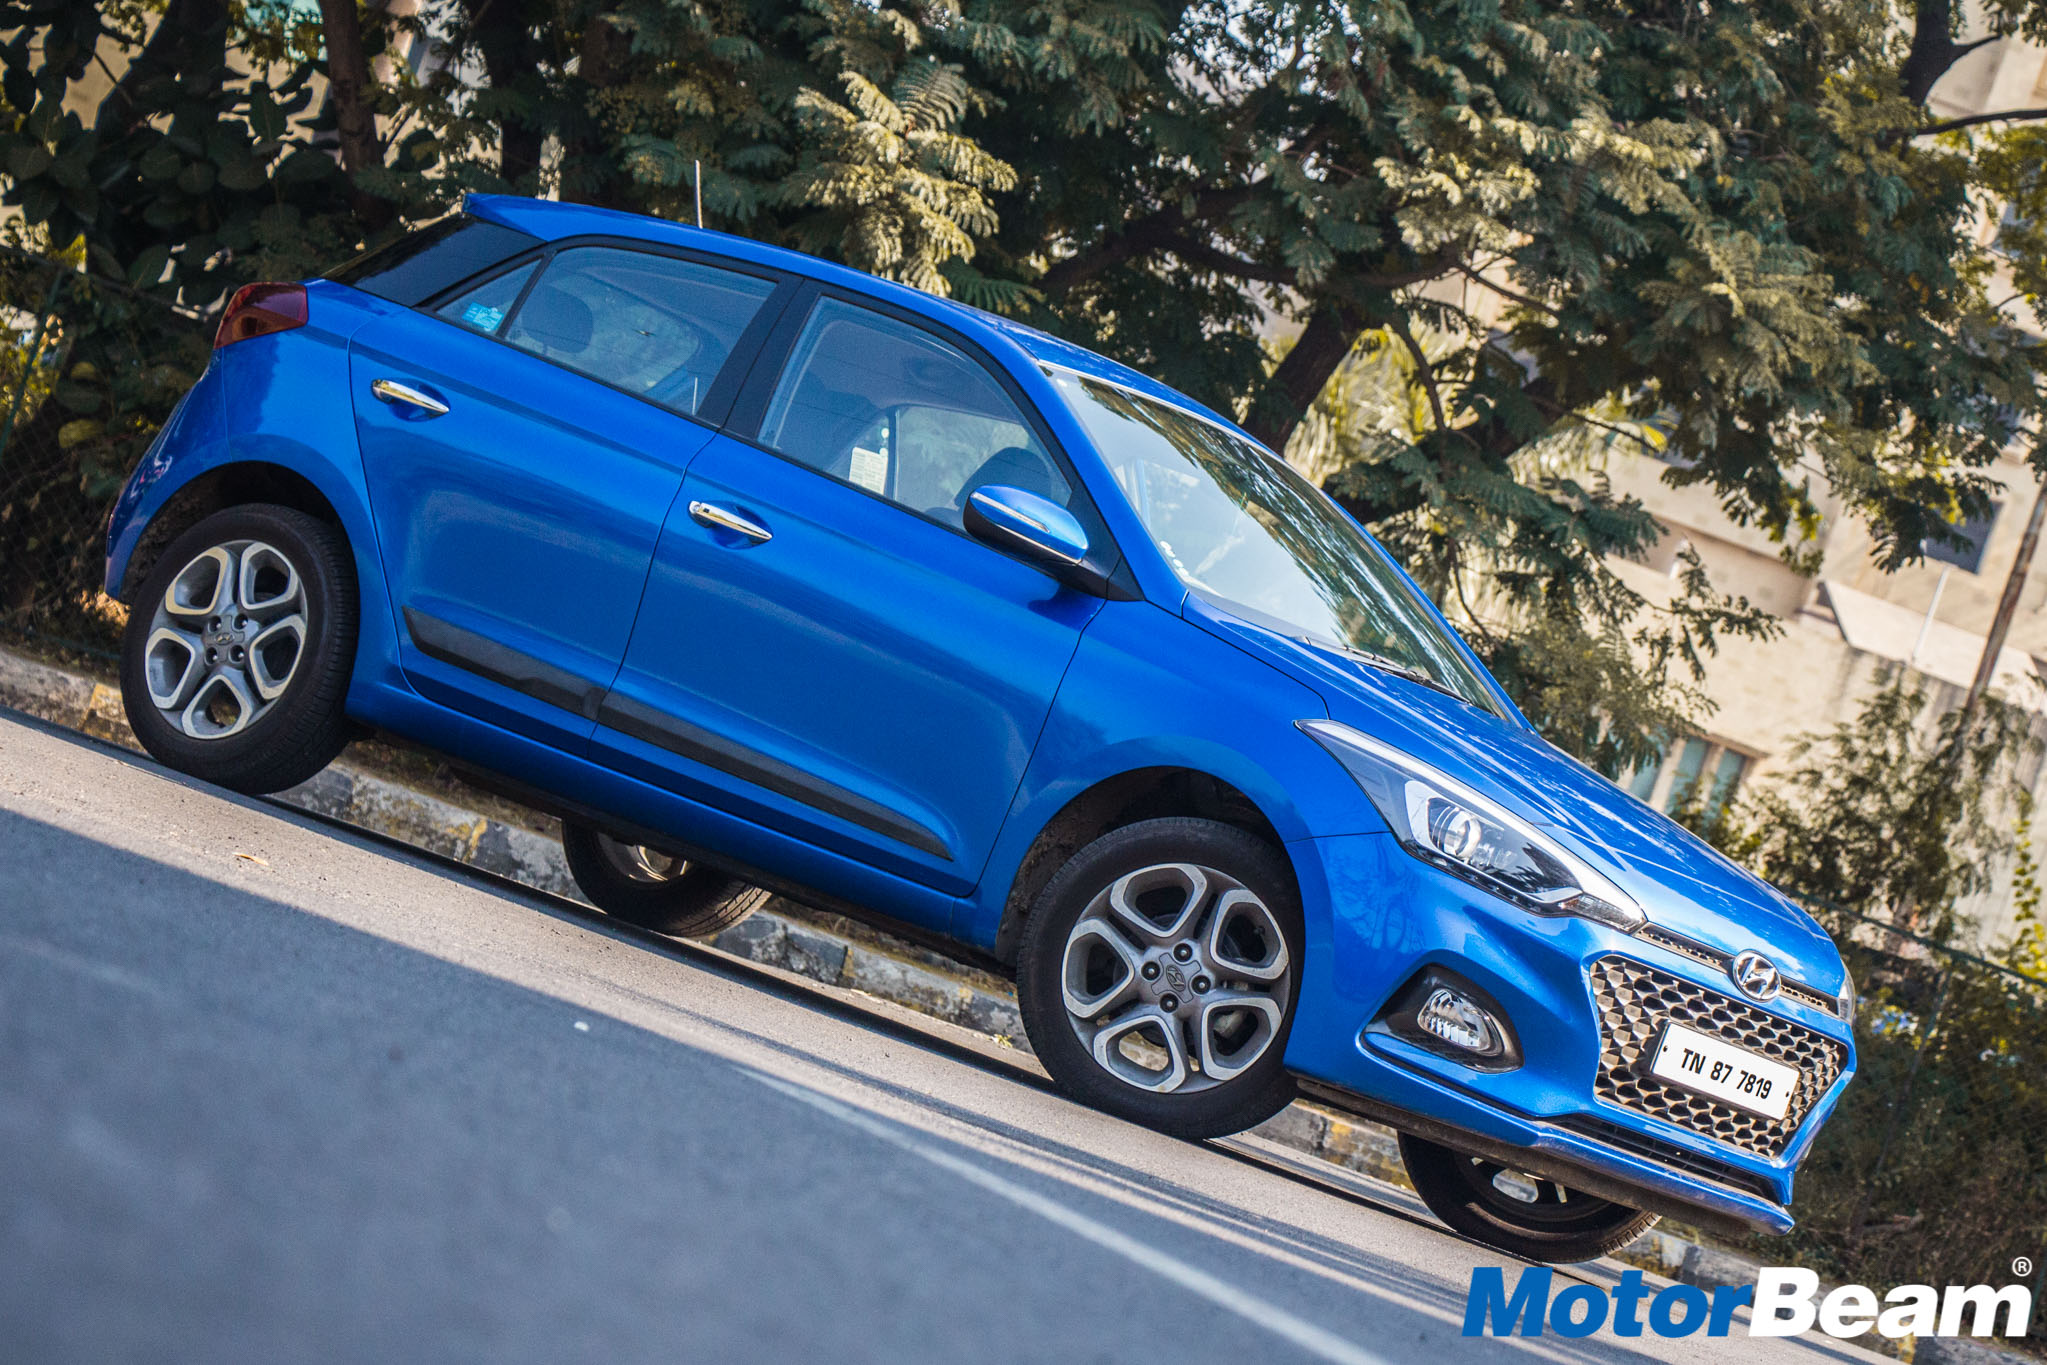 2019 Hyundai I20 Features Updated Exclusive Motorbeam